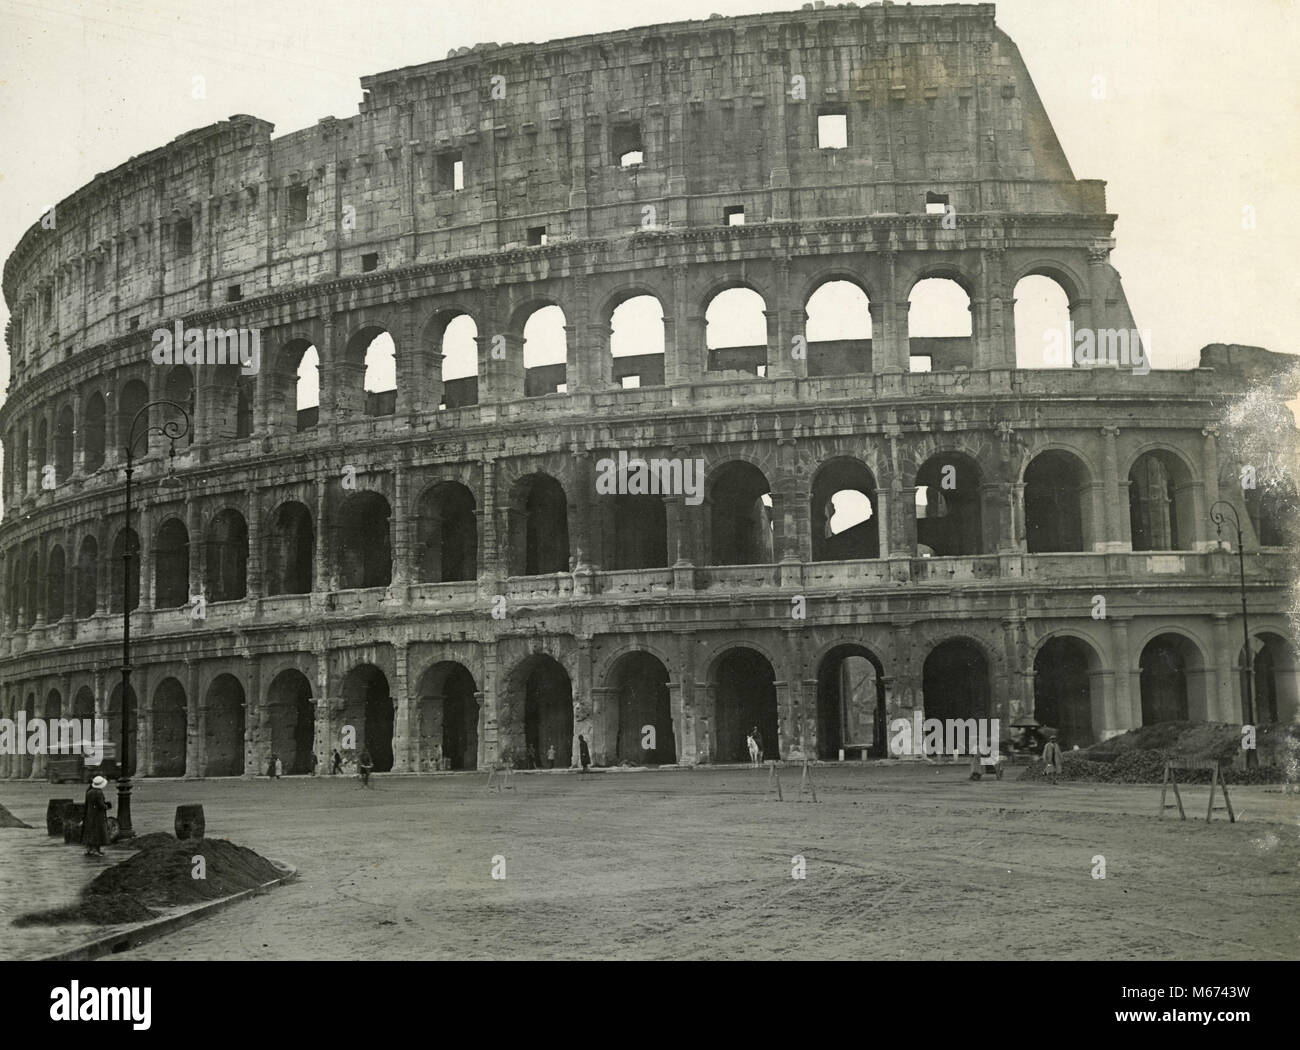 The Colosseum, Rome, Italy 1930s - Stock Image